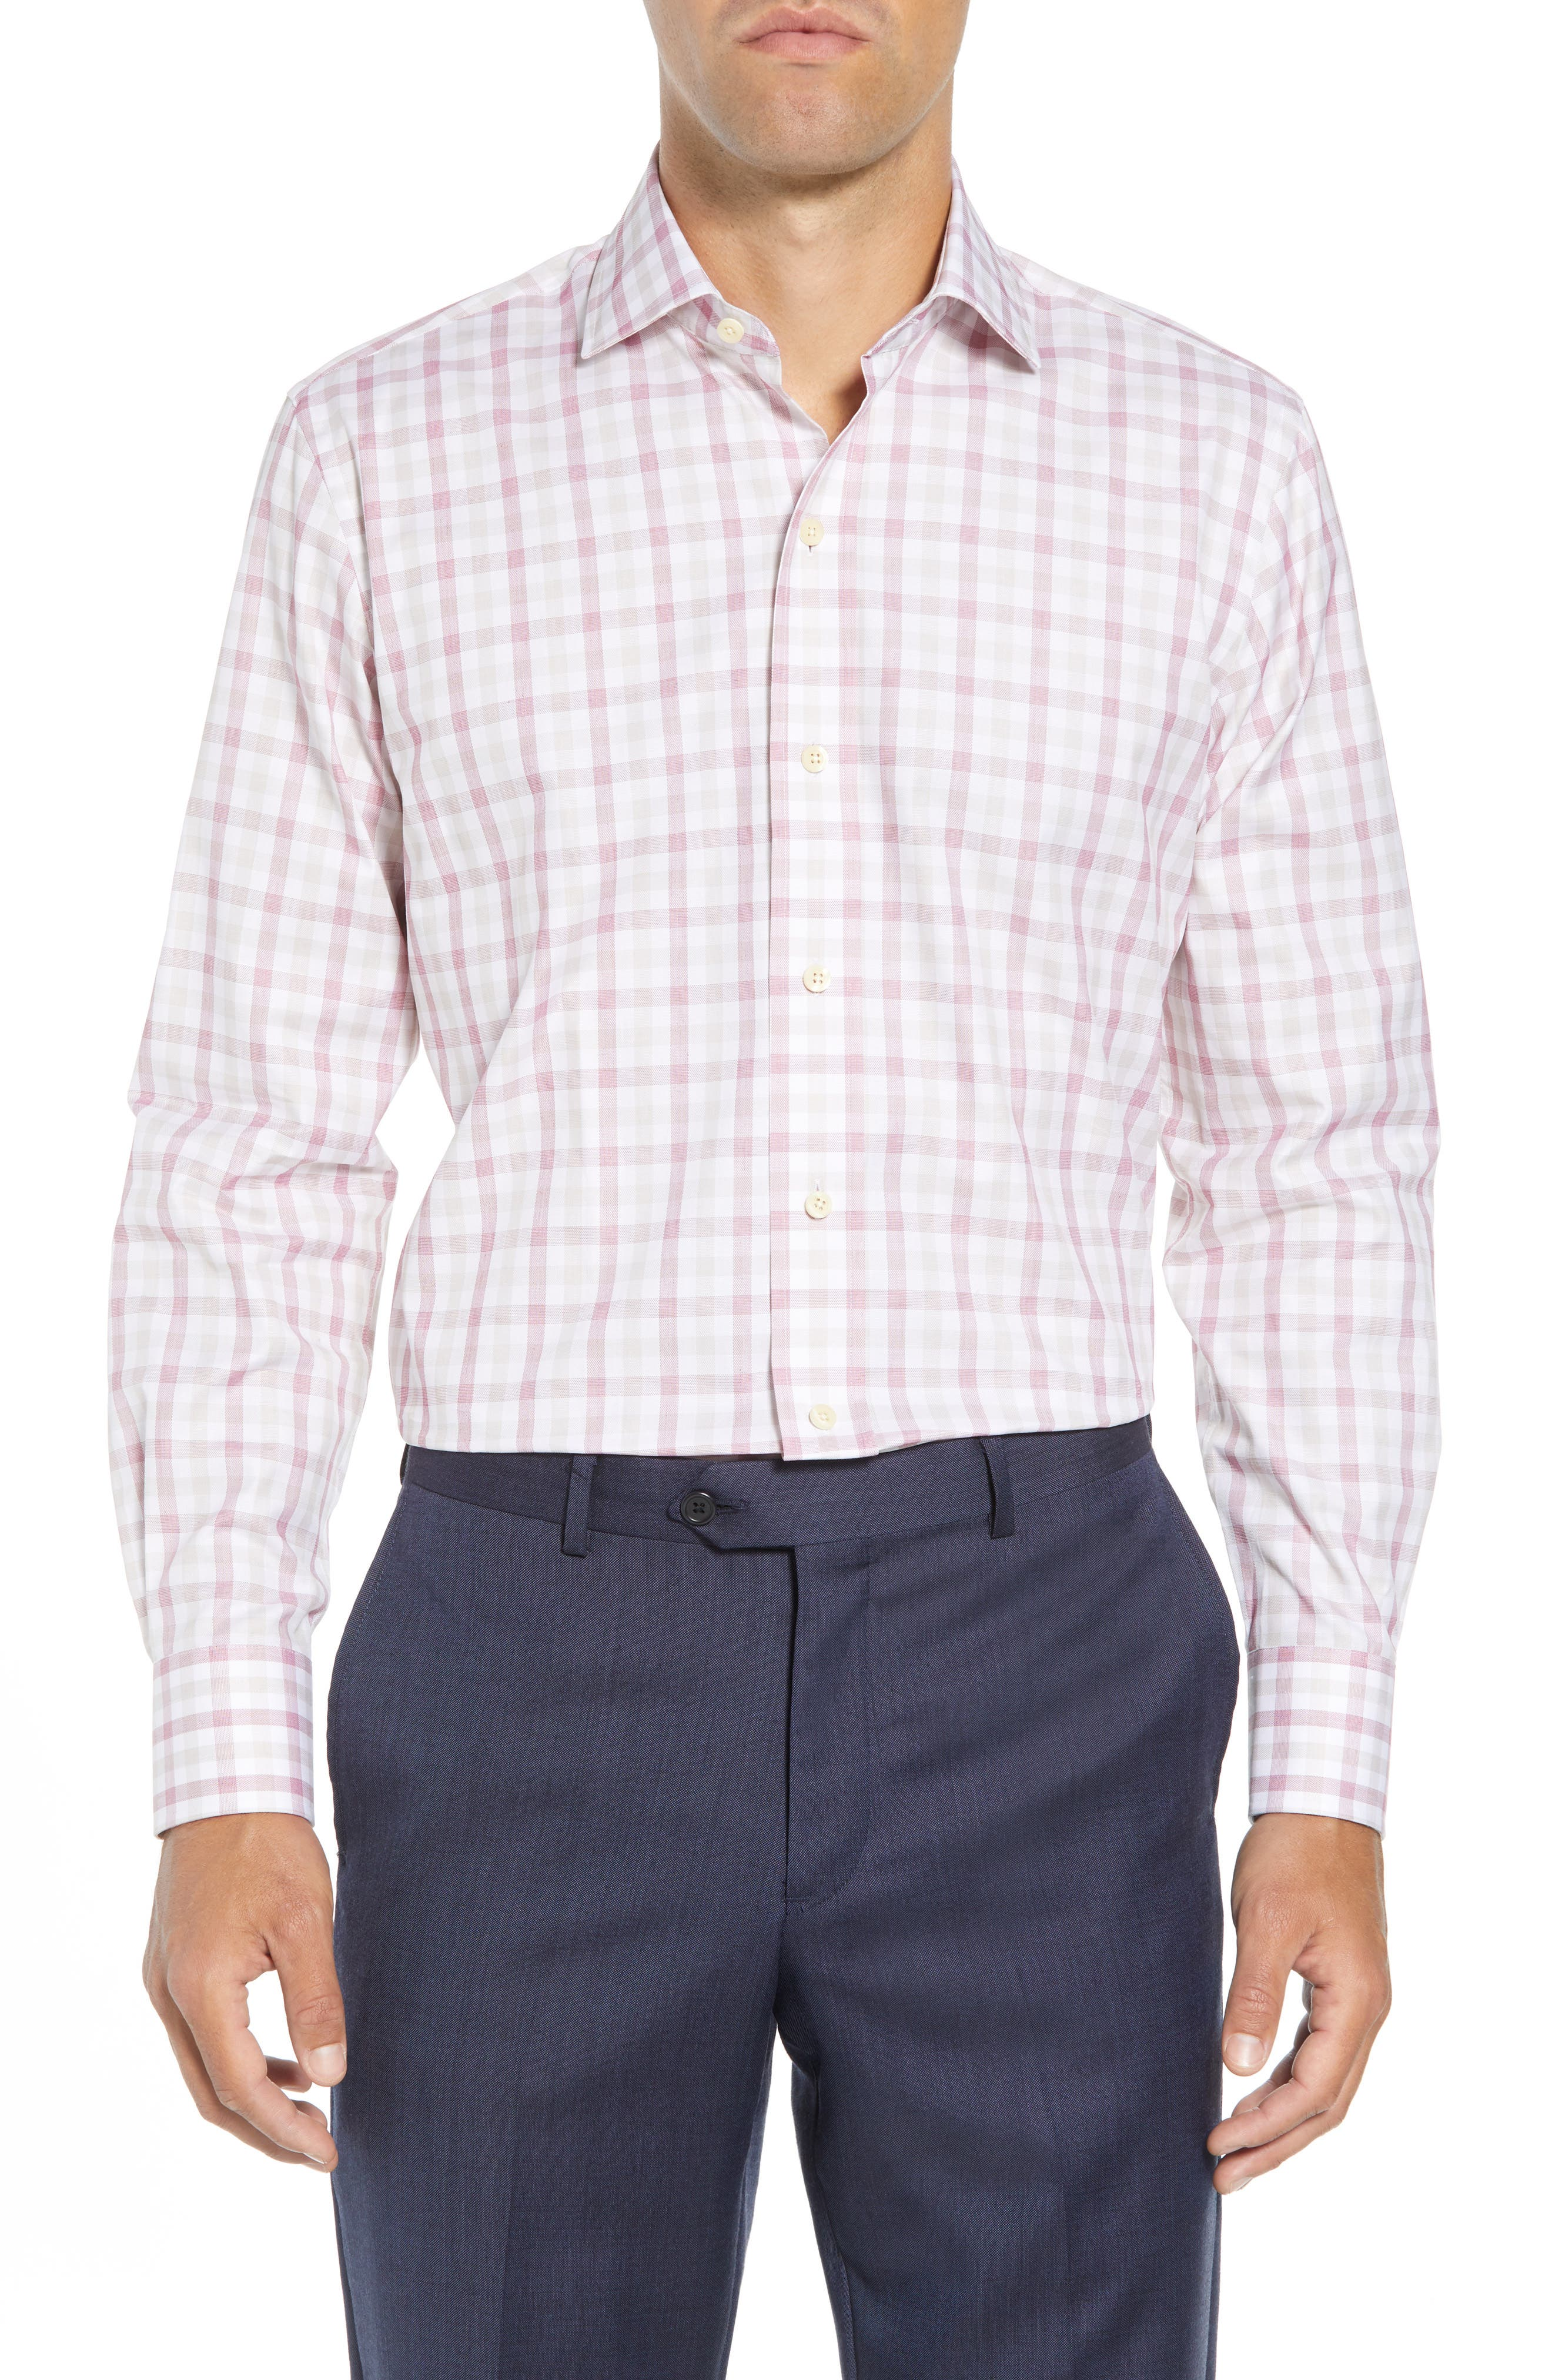 Corbly Trim Fit Check Dress Shirt,                             Main thumbnail 1, color,                             RED